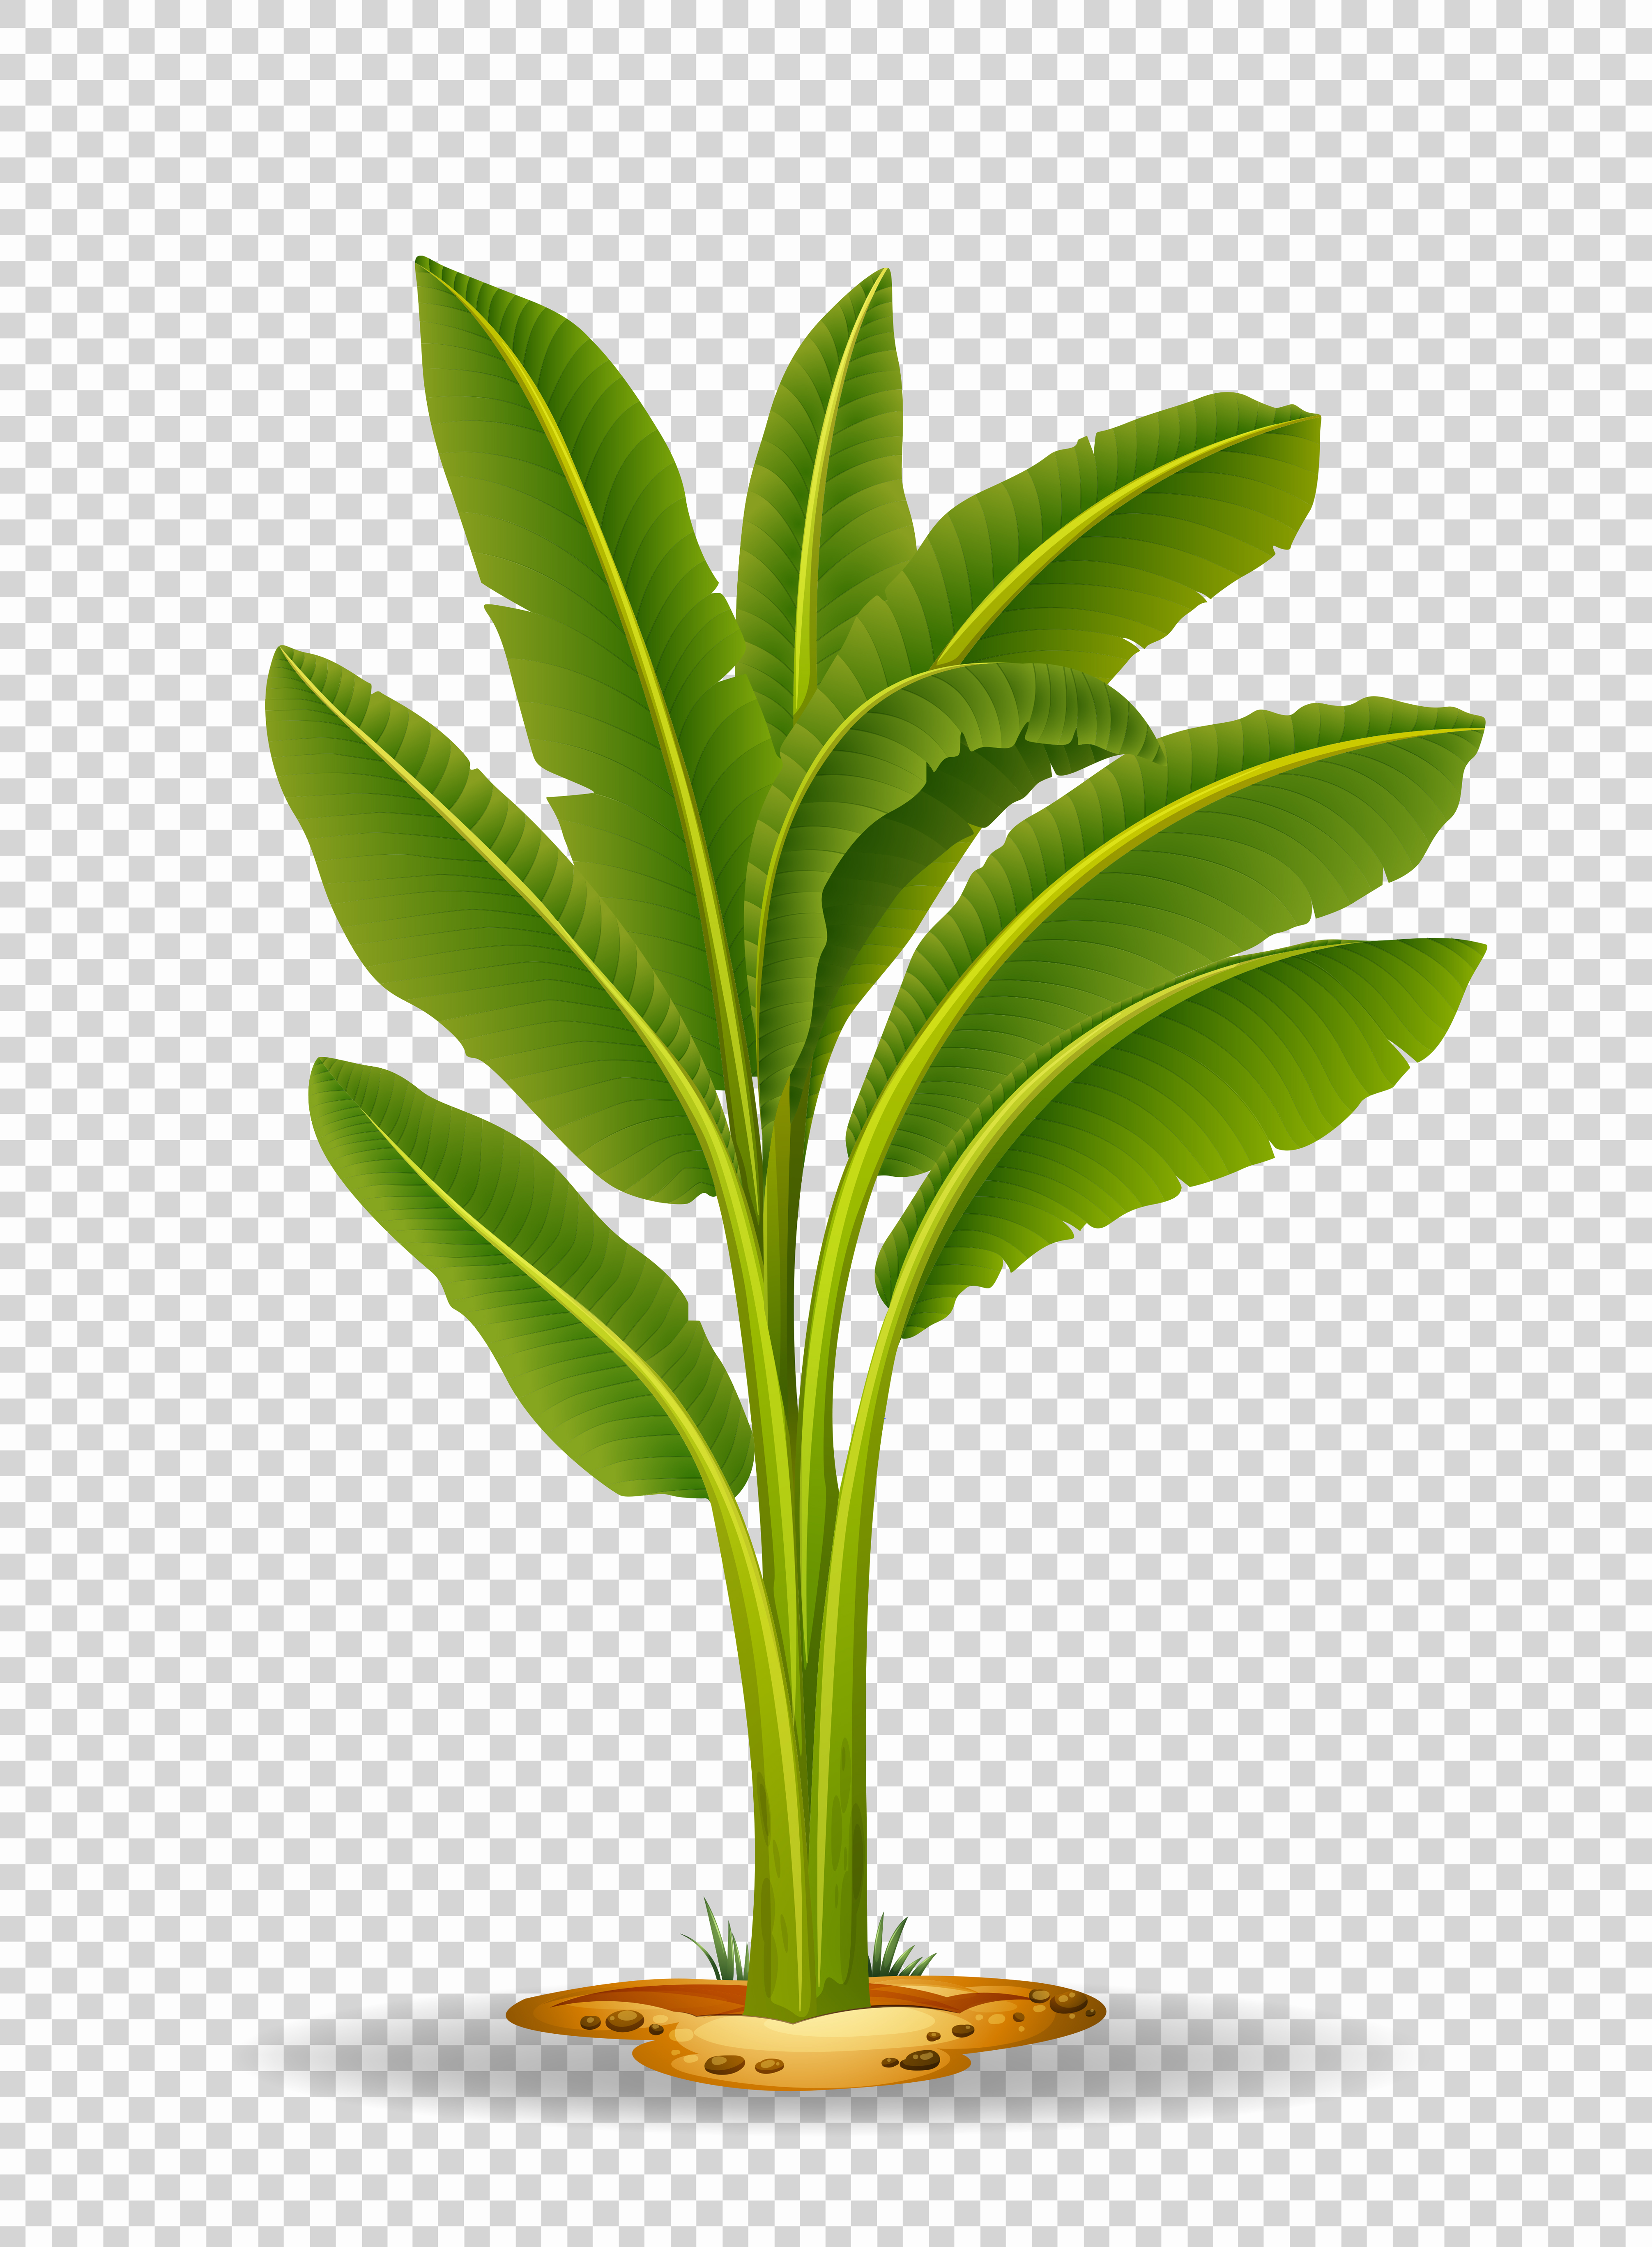 Banana tree on transparent background - Download Free ...